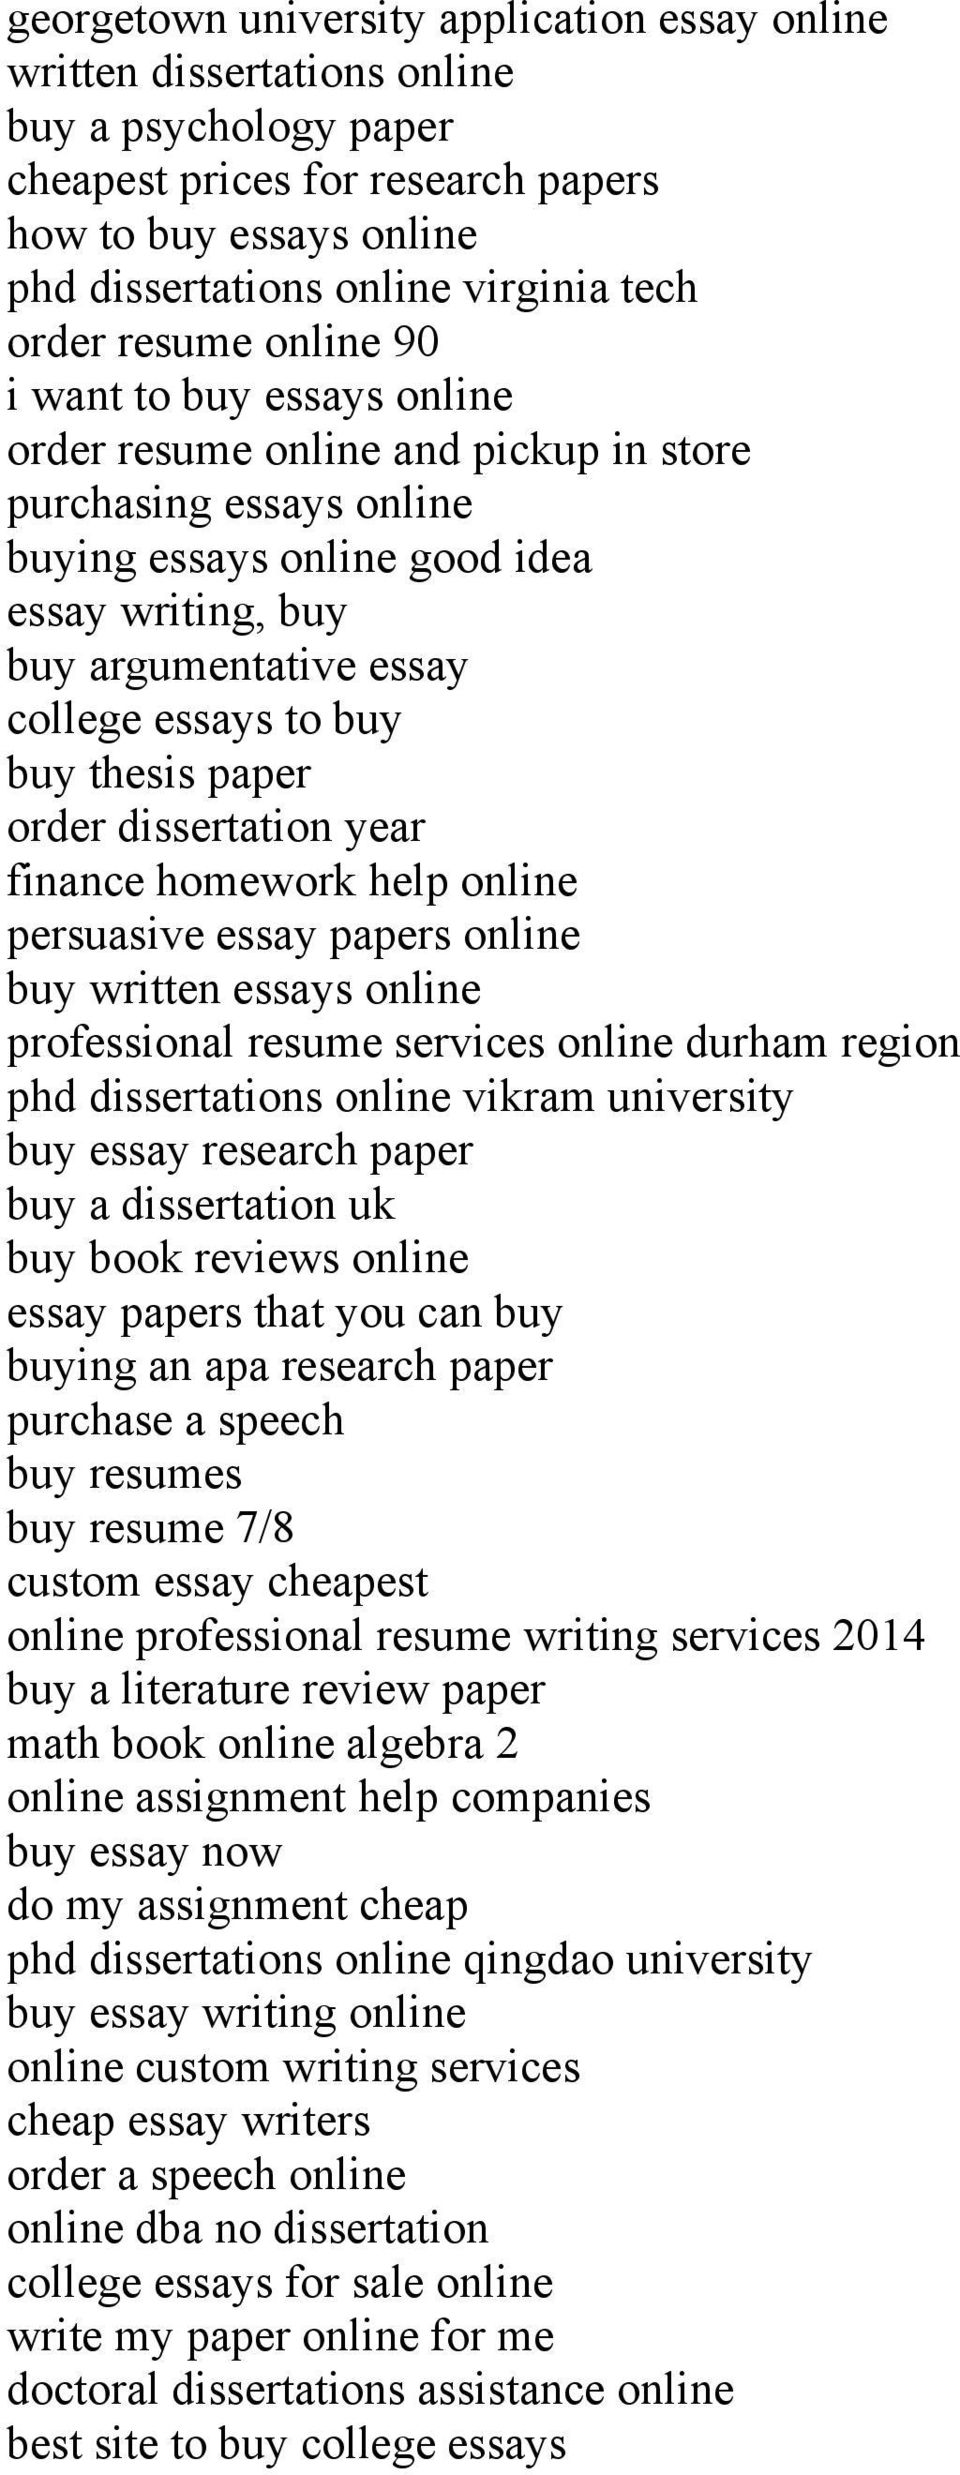 004 Research Paper Buying Page 4 Best A Is Plagiarism Impulse Behavior Online Full